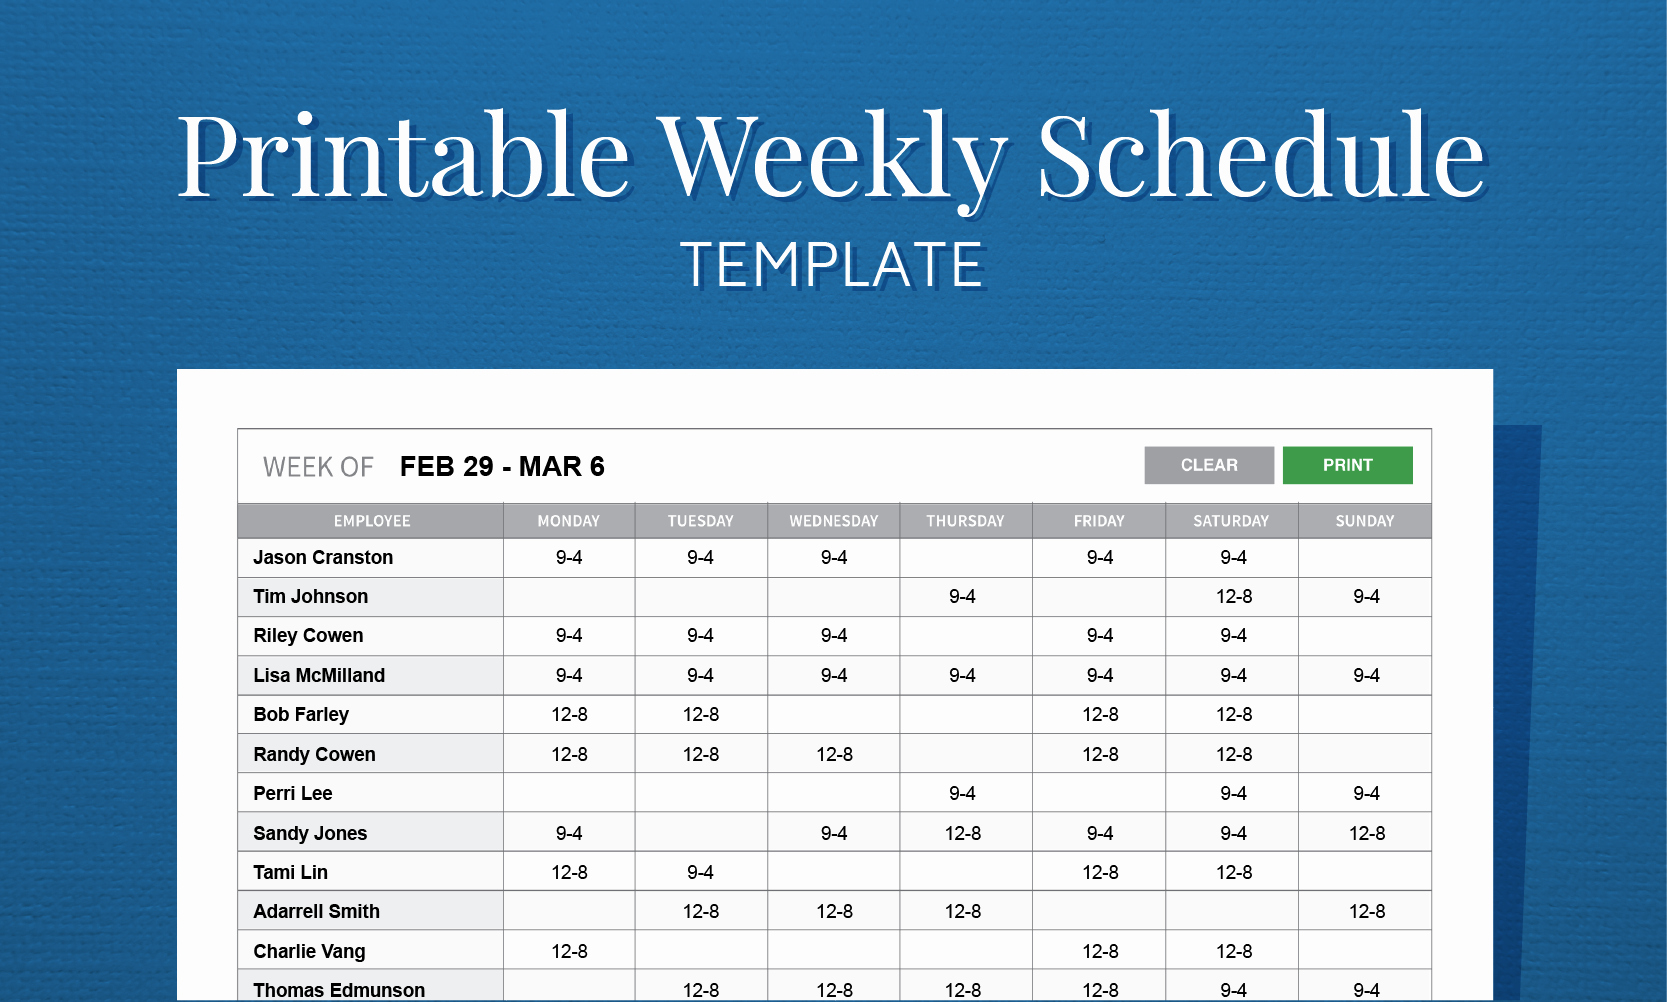 Free Weekly Work Schedule Template Best Of Free Printable Weekly Work Schedule Template for Employee